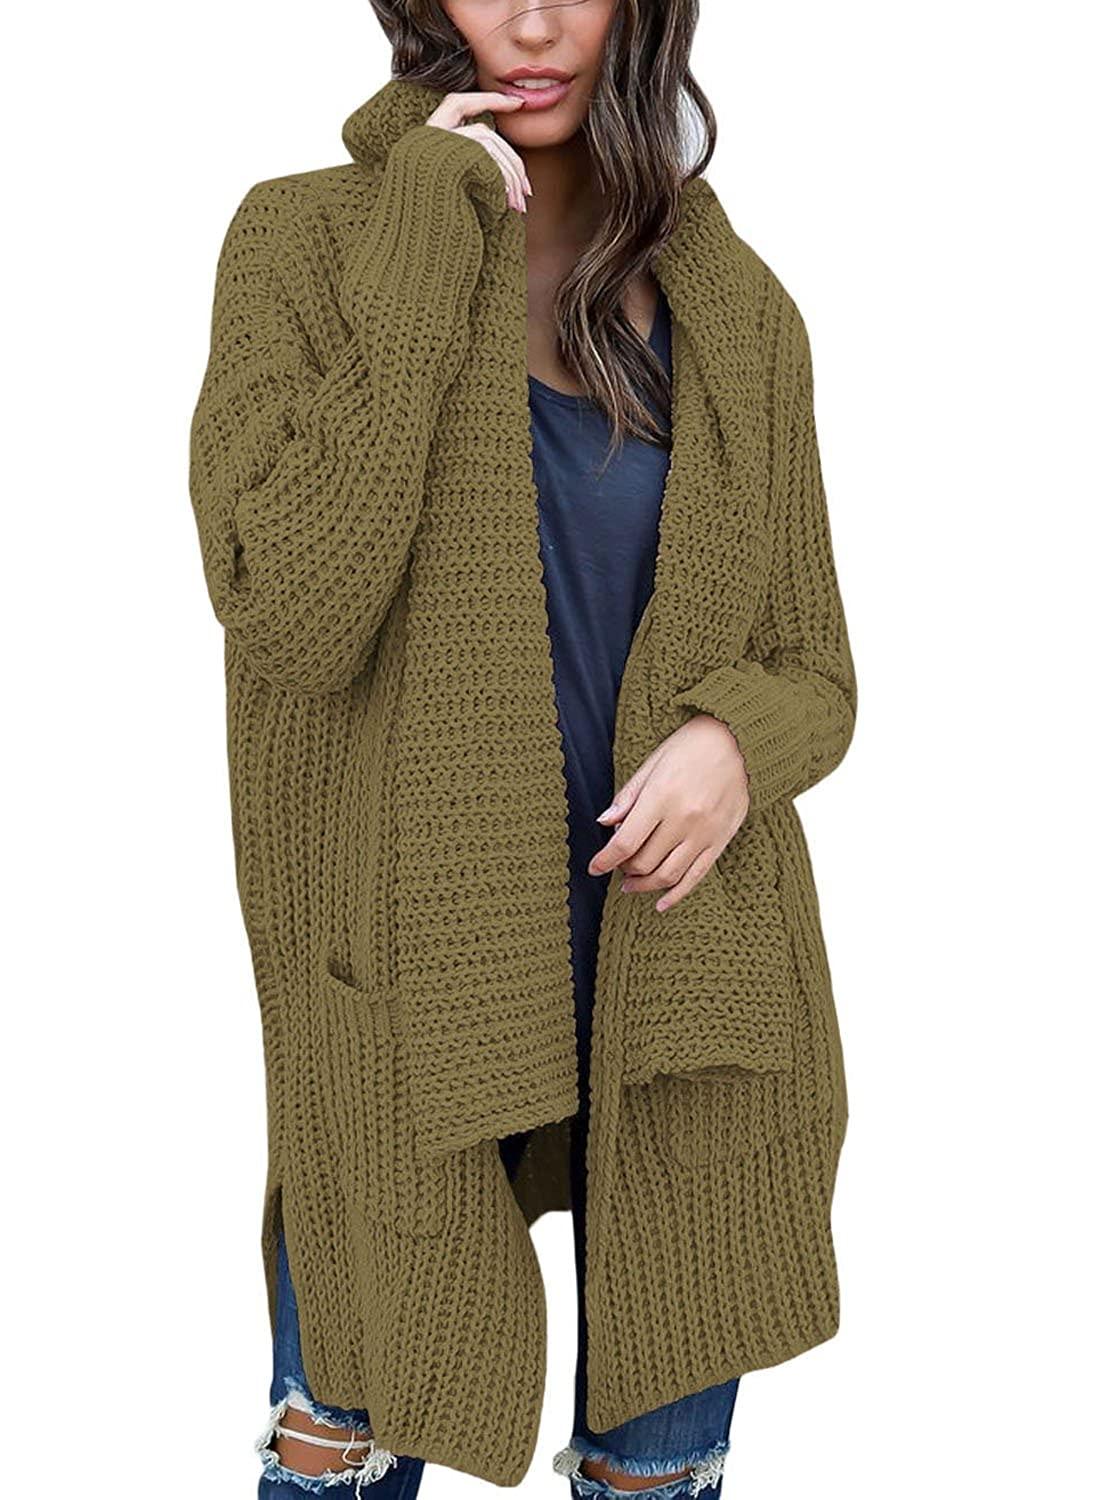 005139c217 Women Cable Knit Cardigan Sweaters Open Front Long Sleeve Winter Warm  Outwear with Pockets Feature  Long Sleeve